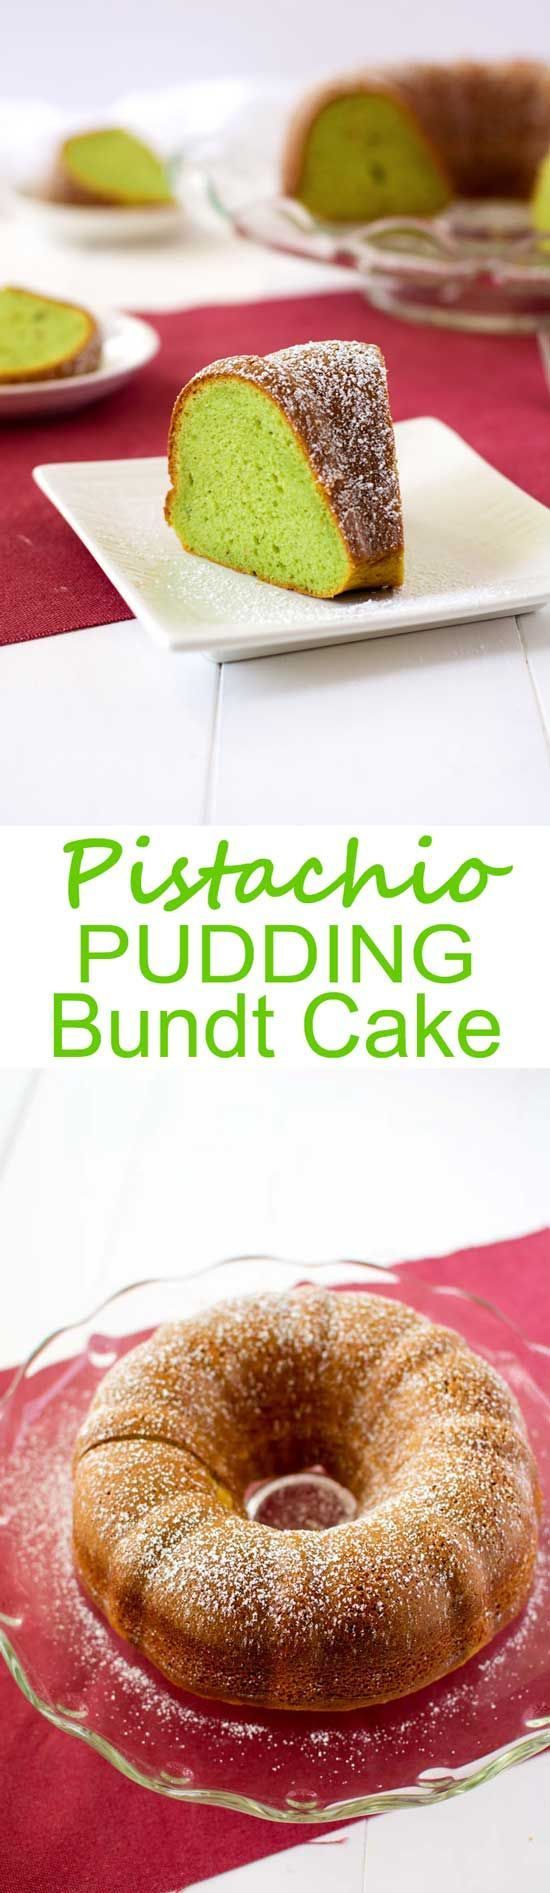 Easy Pistachio Bundt Cake using pistachio pudding and box cake mix!